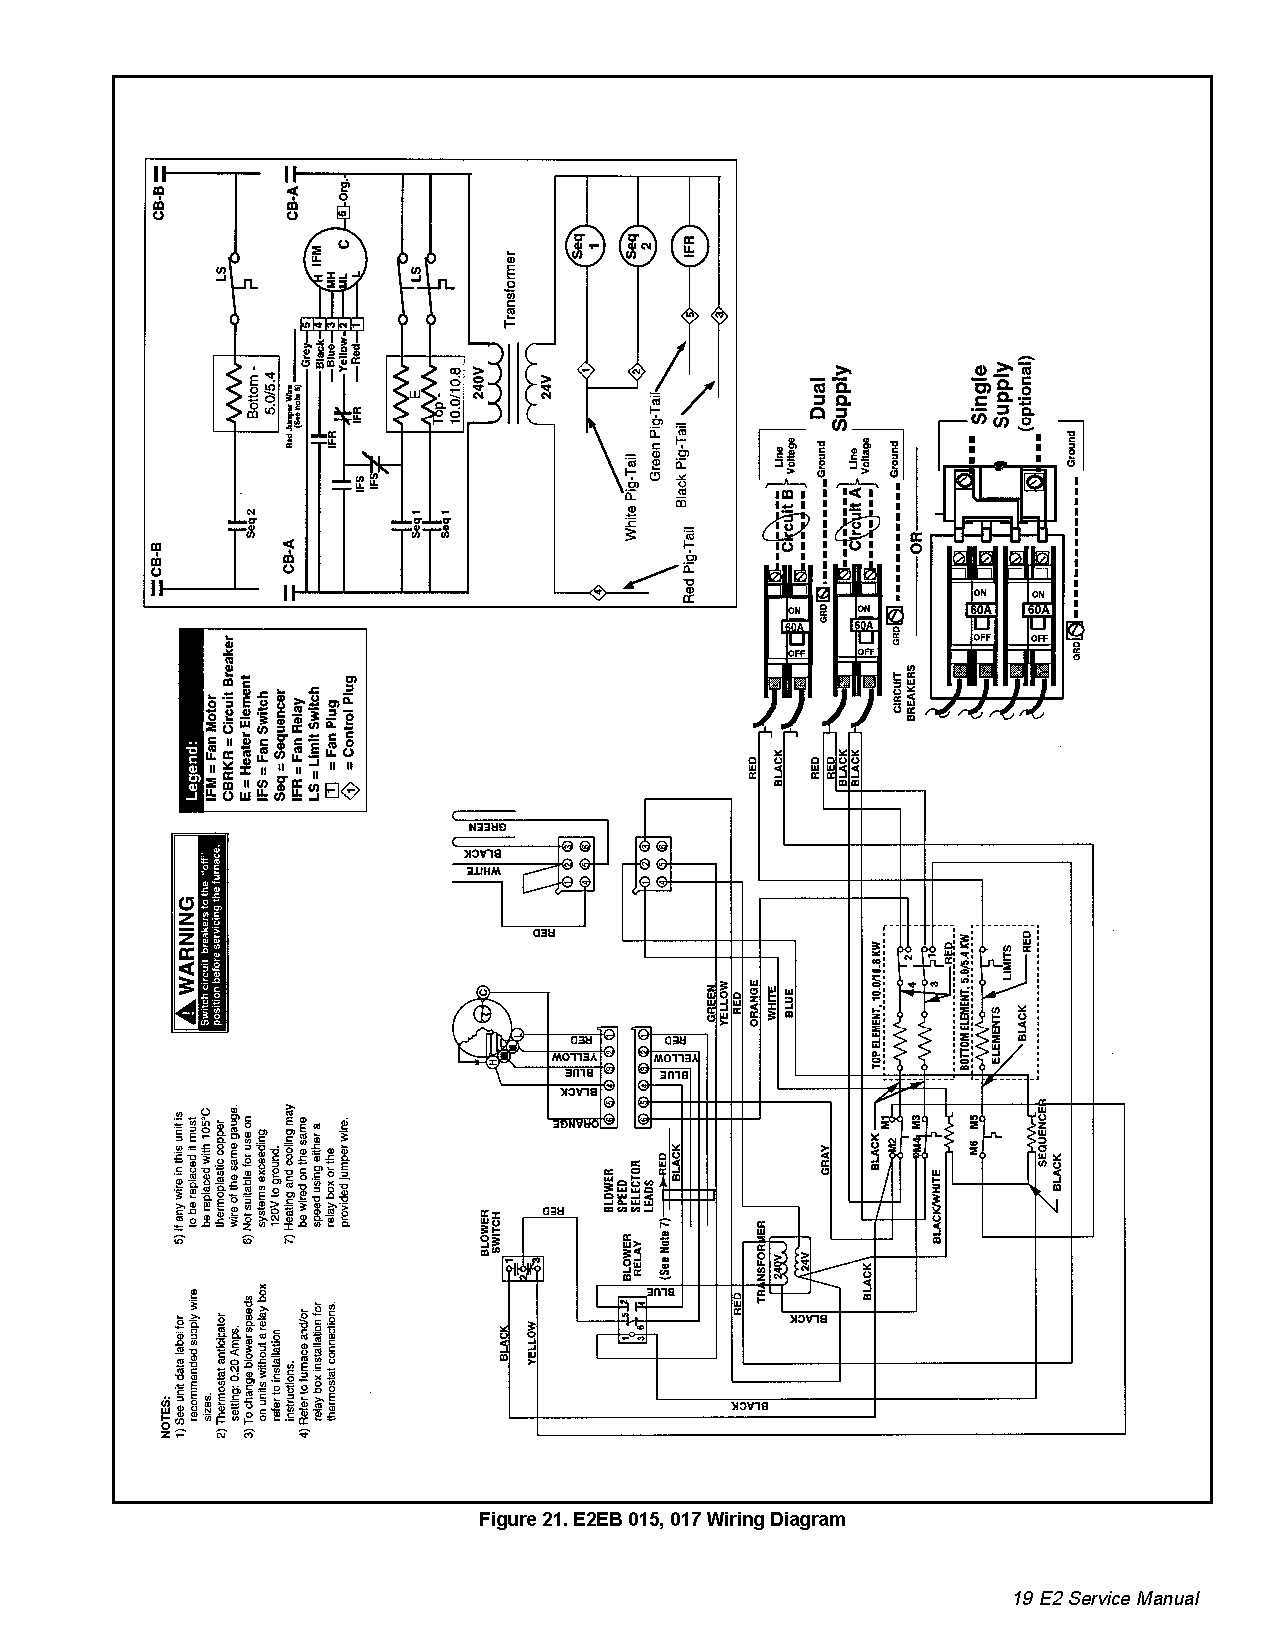 I Have An Intertherm Nordyne E2eb Wiring Diagram